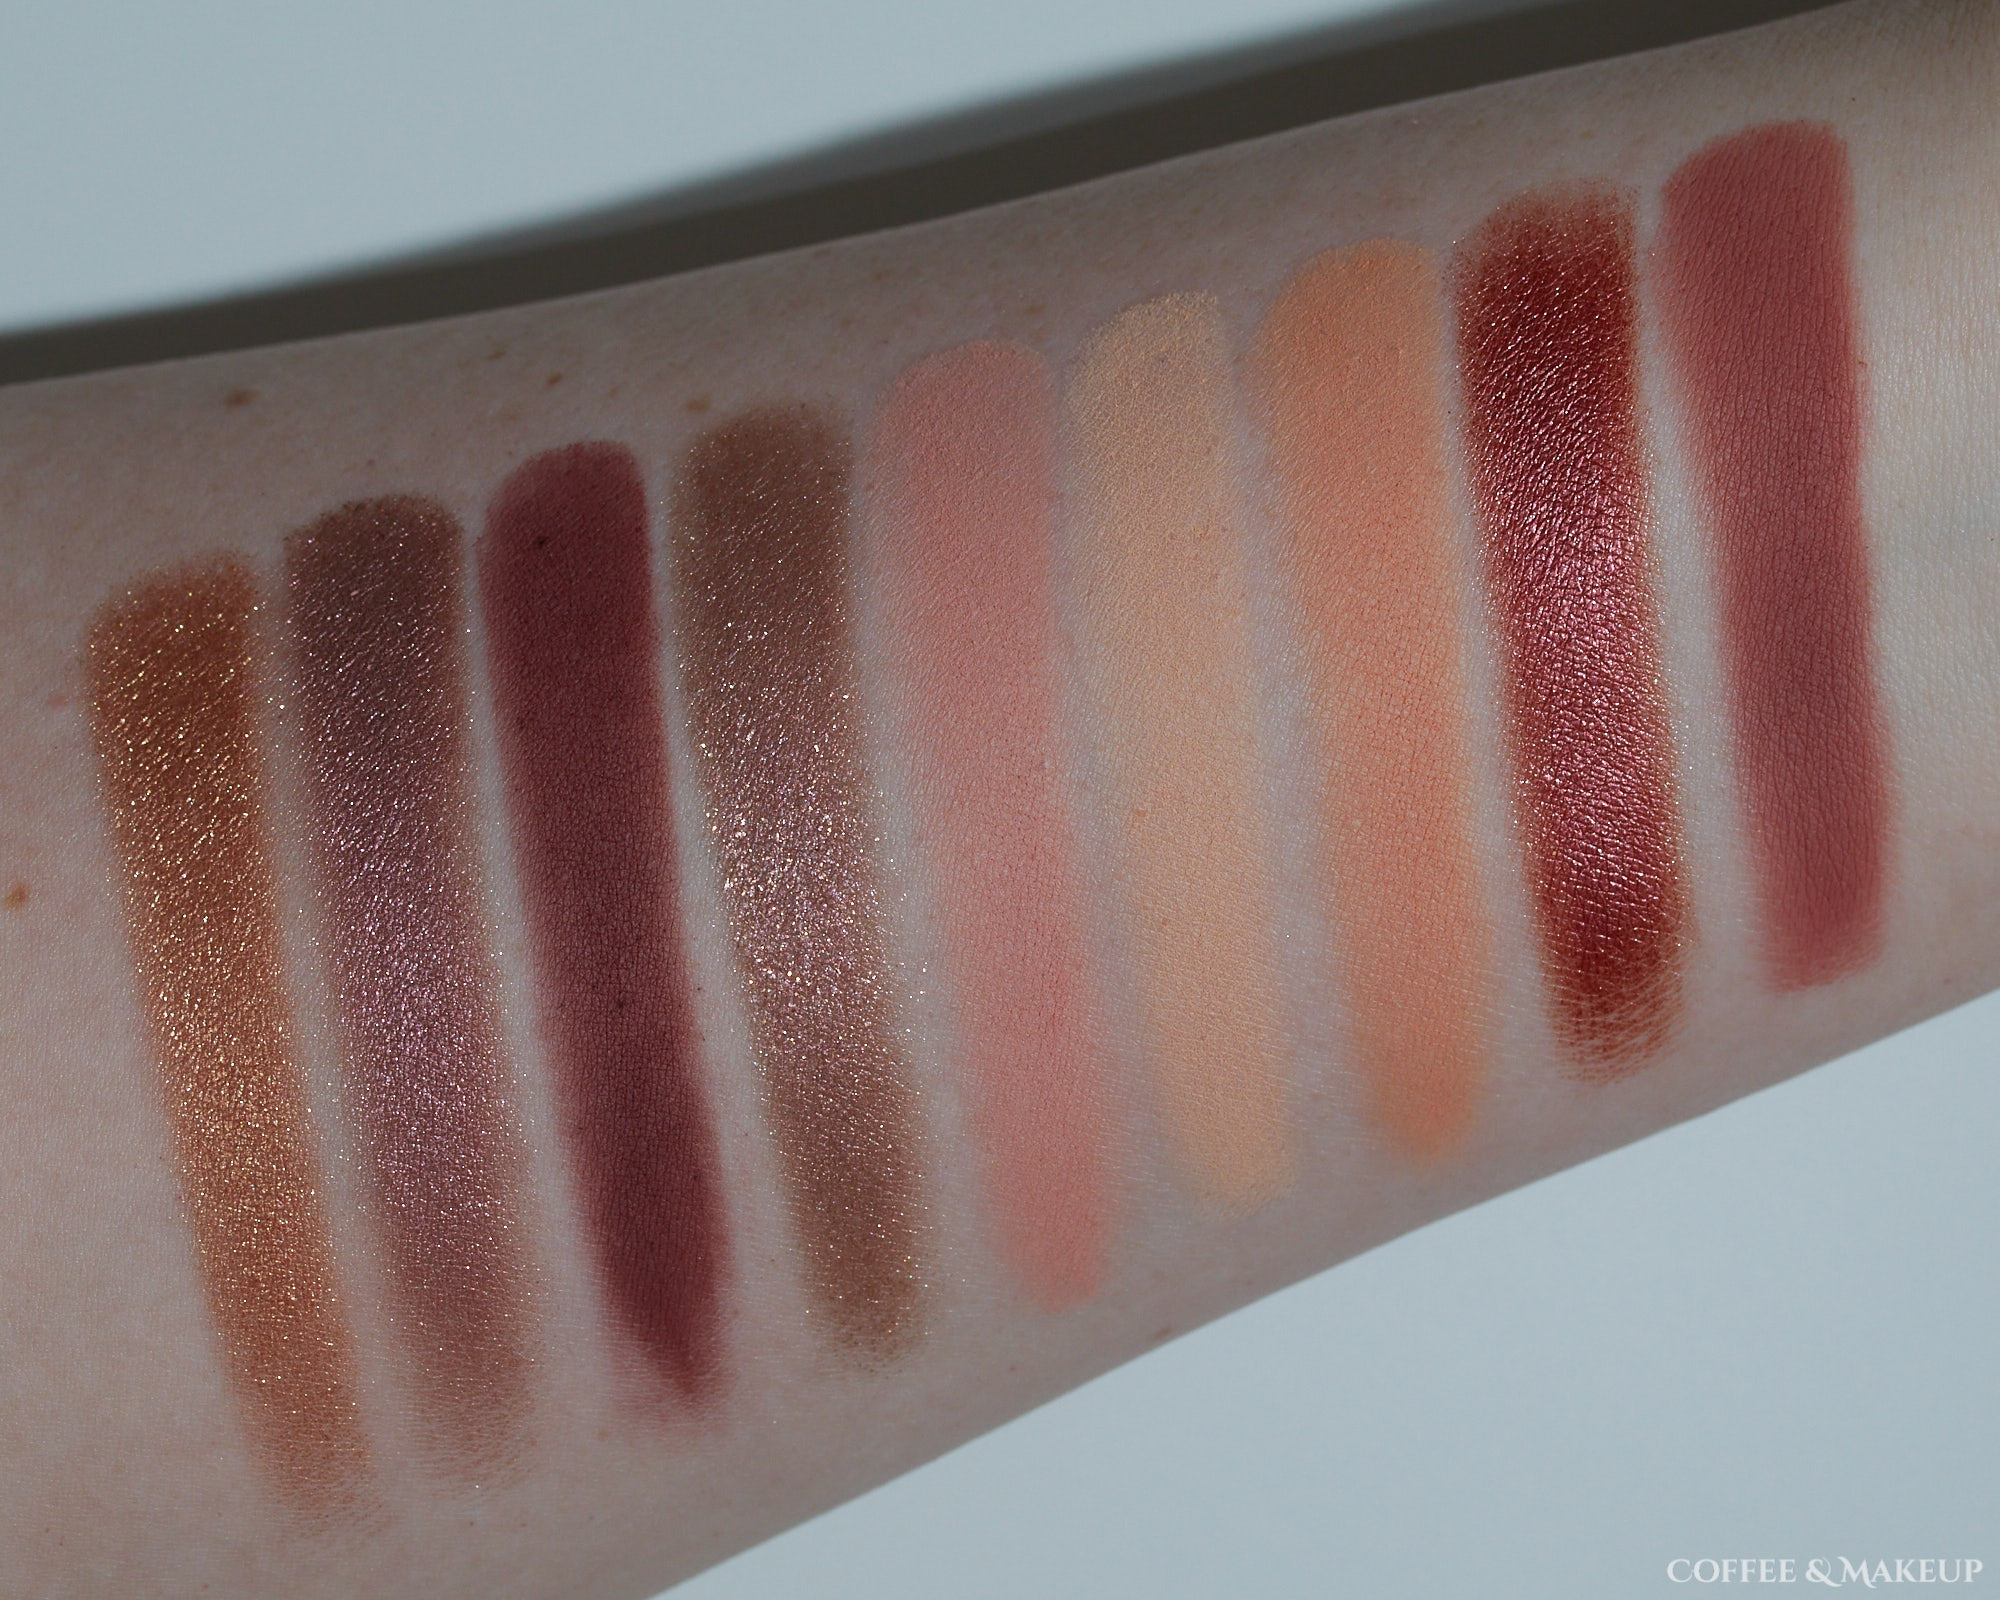 Huda Beauty Sand Haze Palette Swatches